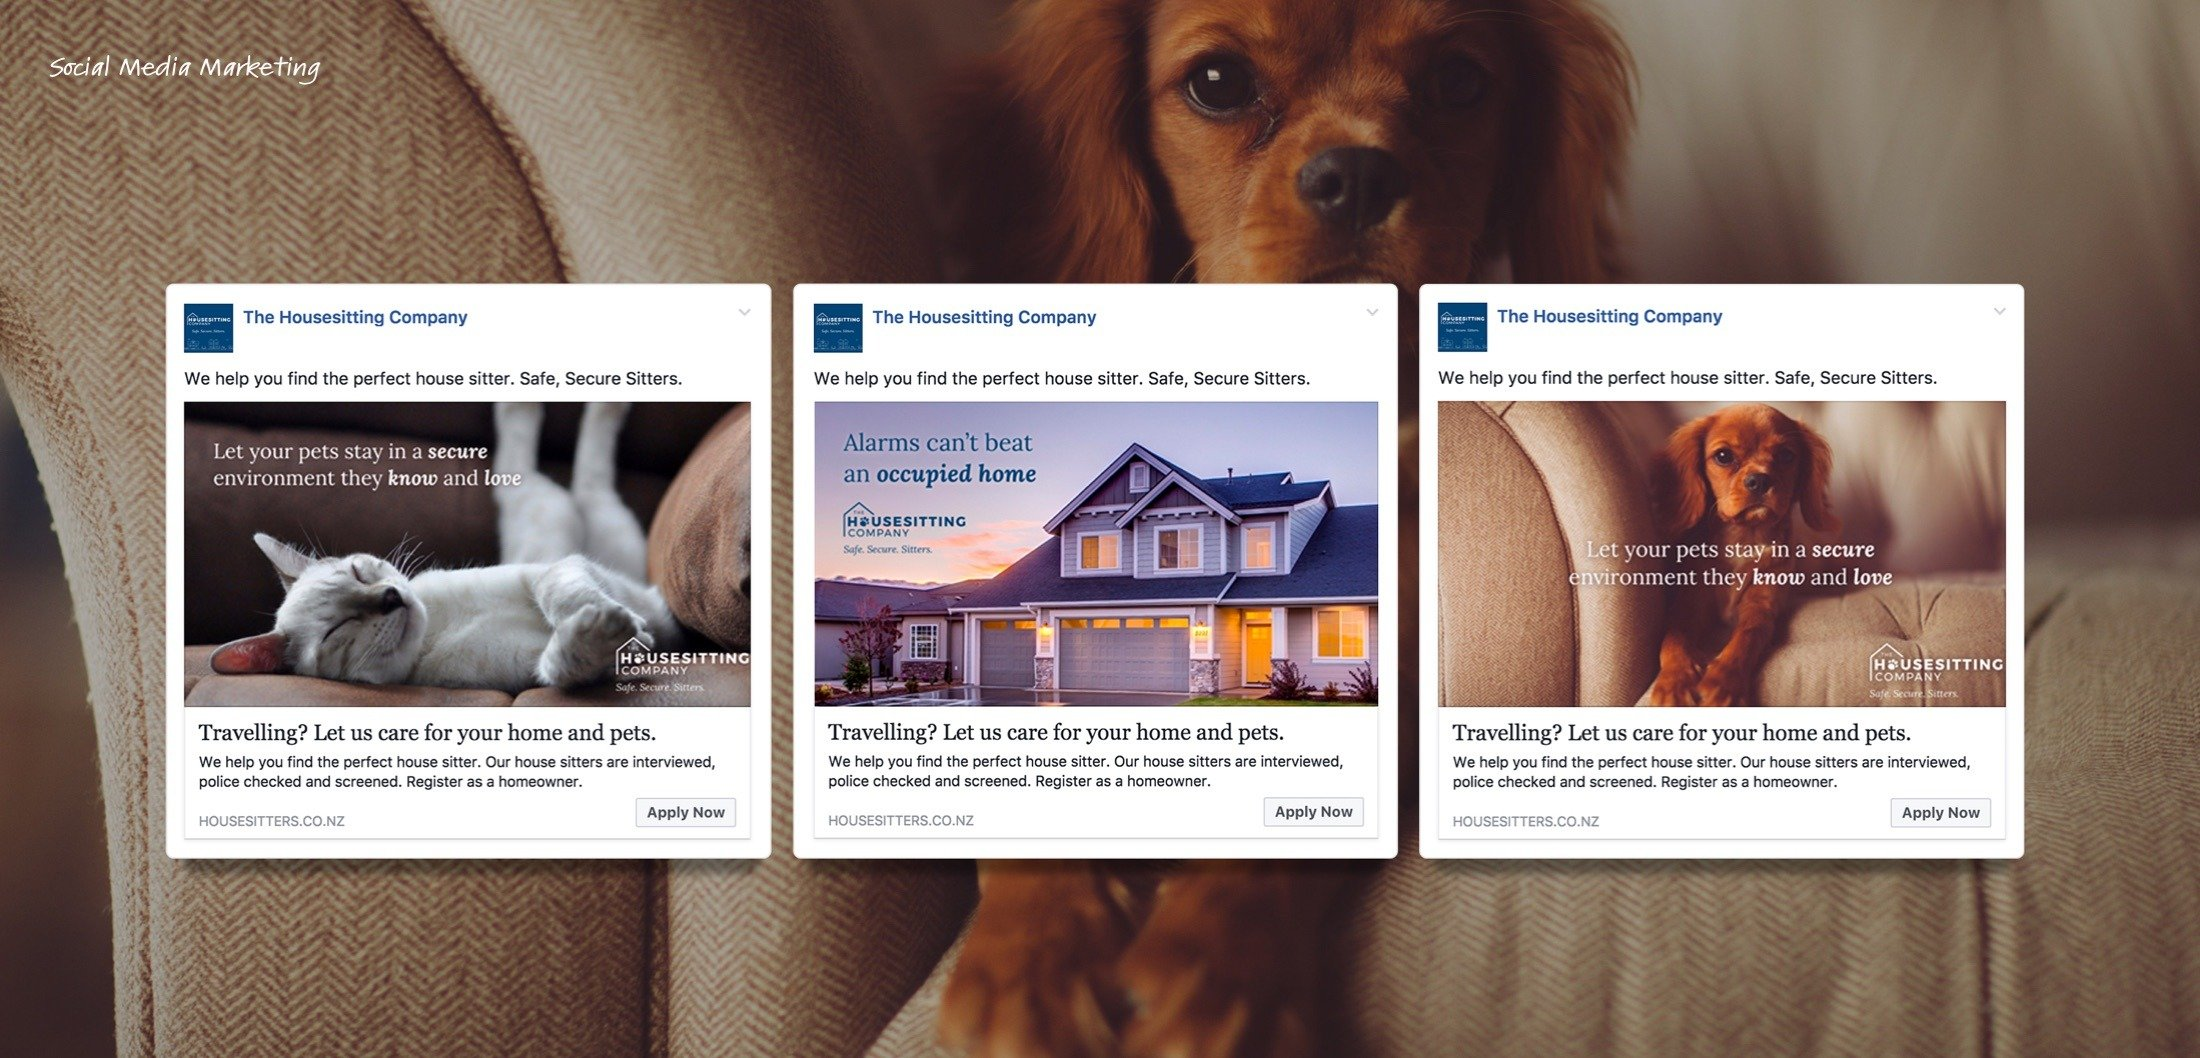 Social Media Marketing - Housesitting Company